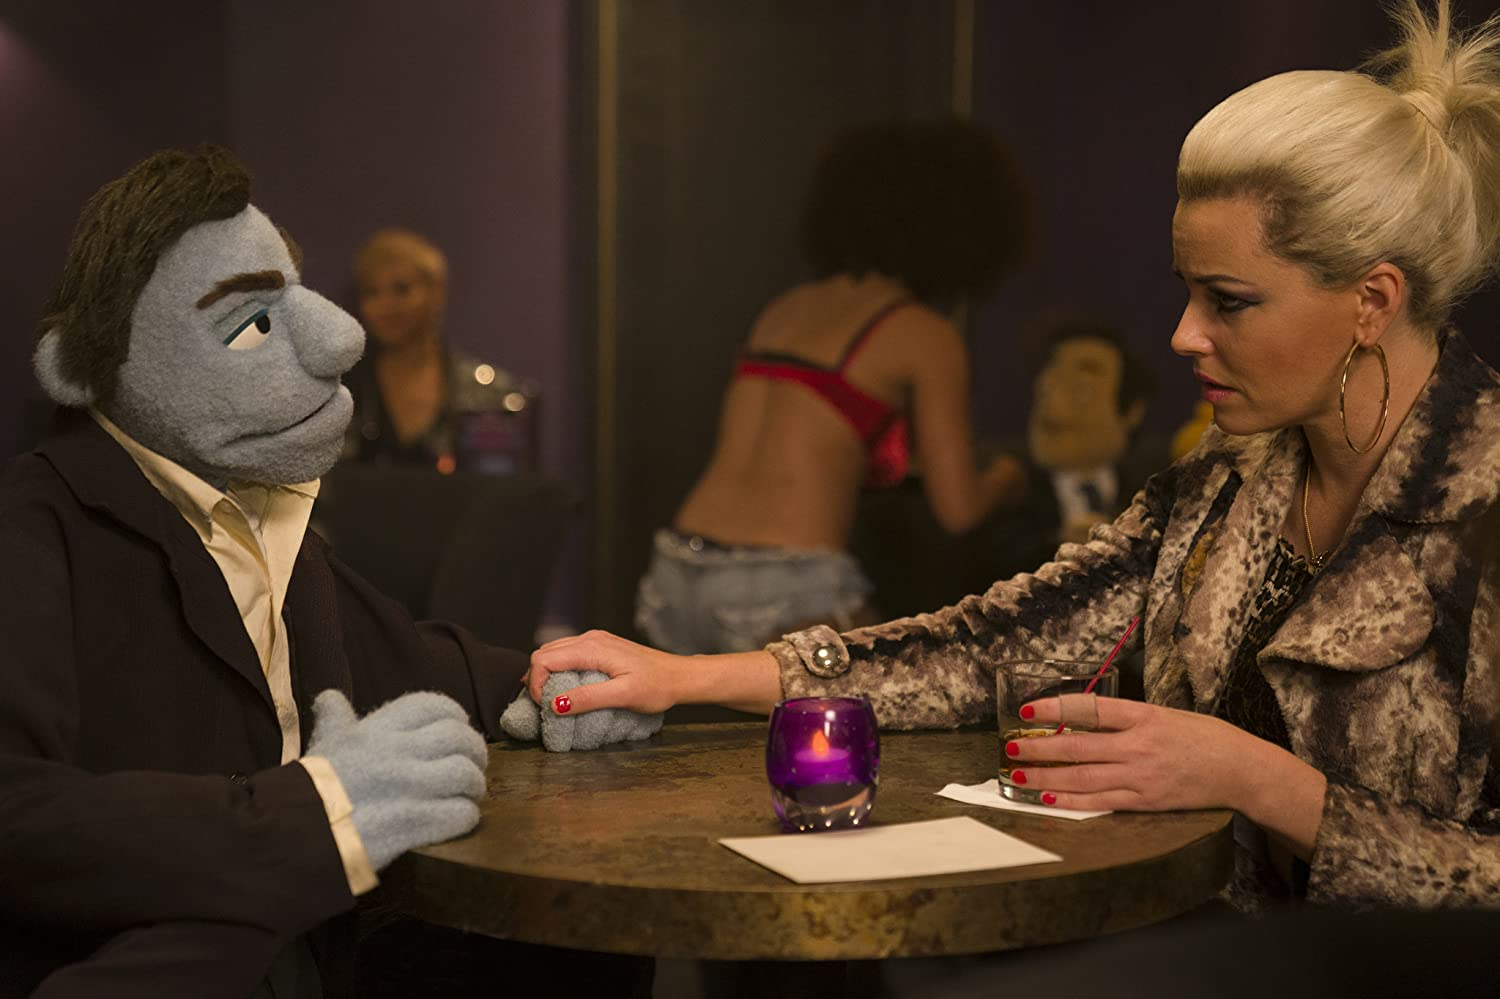 Elizabeth Banks and Bill Barretta in The Happytime Murders (2018)